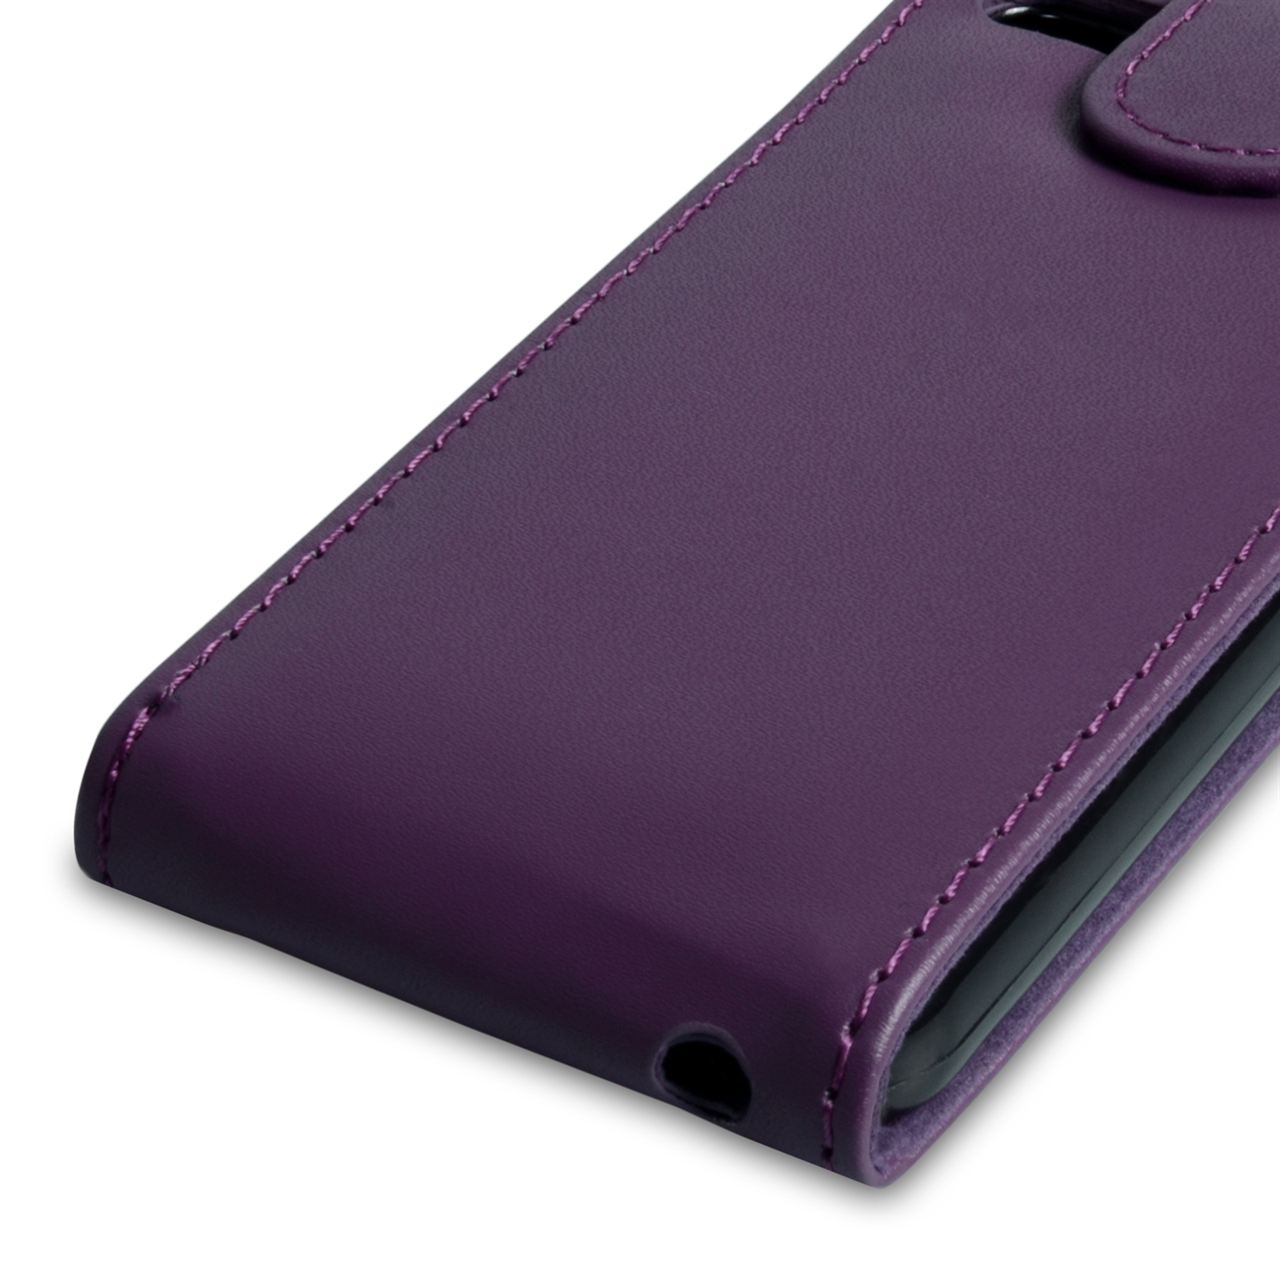 YouSave Accessories iPhone 5C Leather Effect Flip Case - Purple